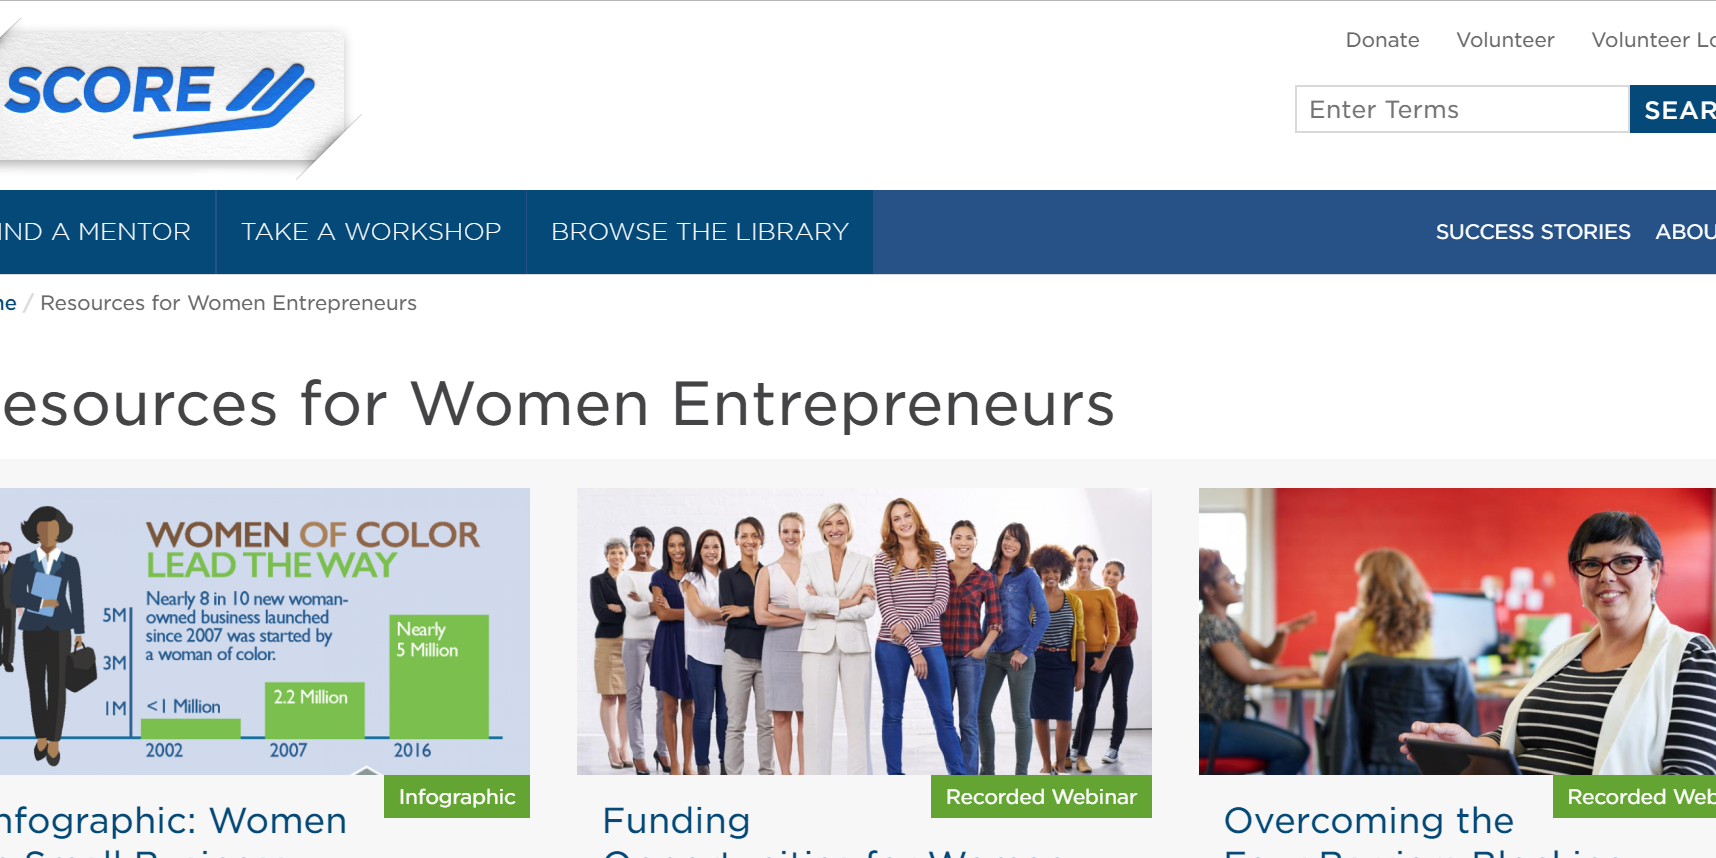 SCORE Resources for Women